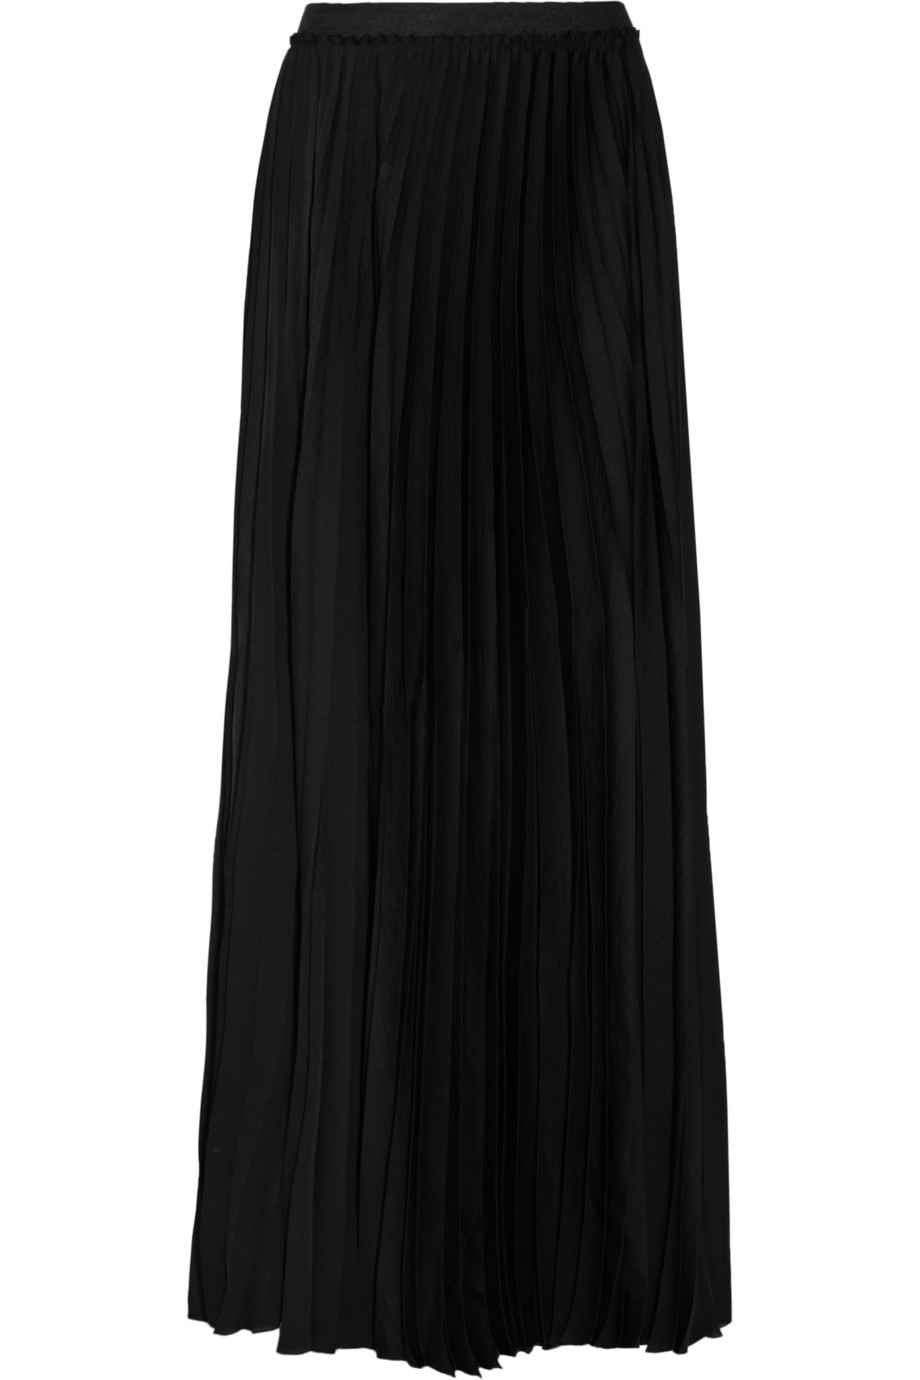 enza costa pleated satin maxi skirt in black lyst